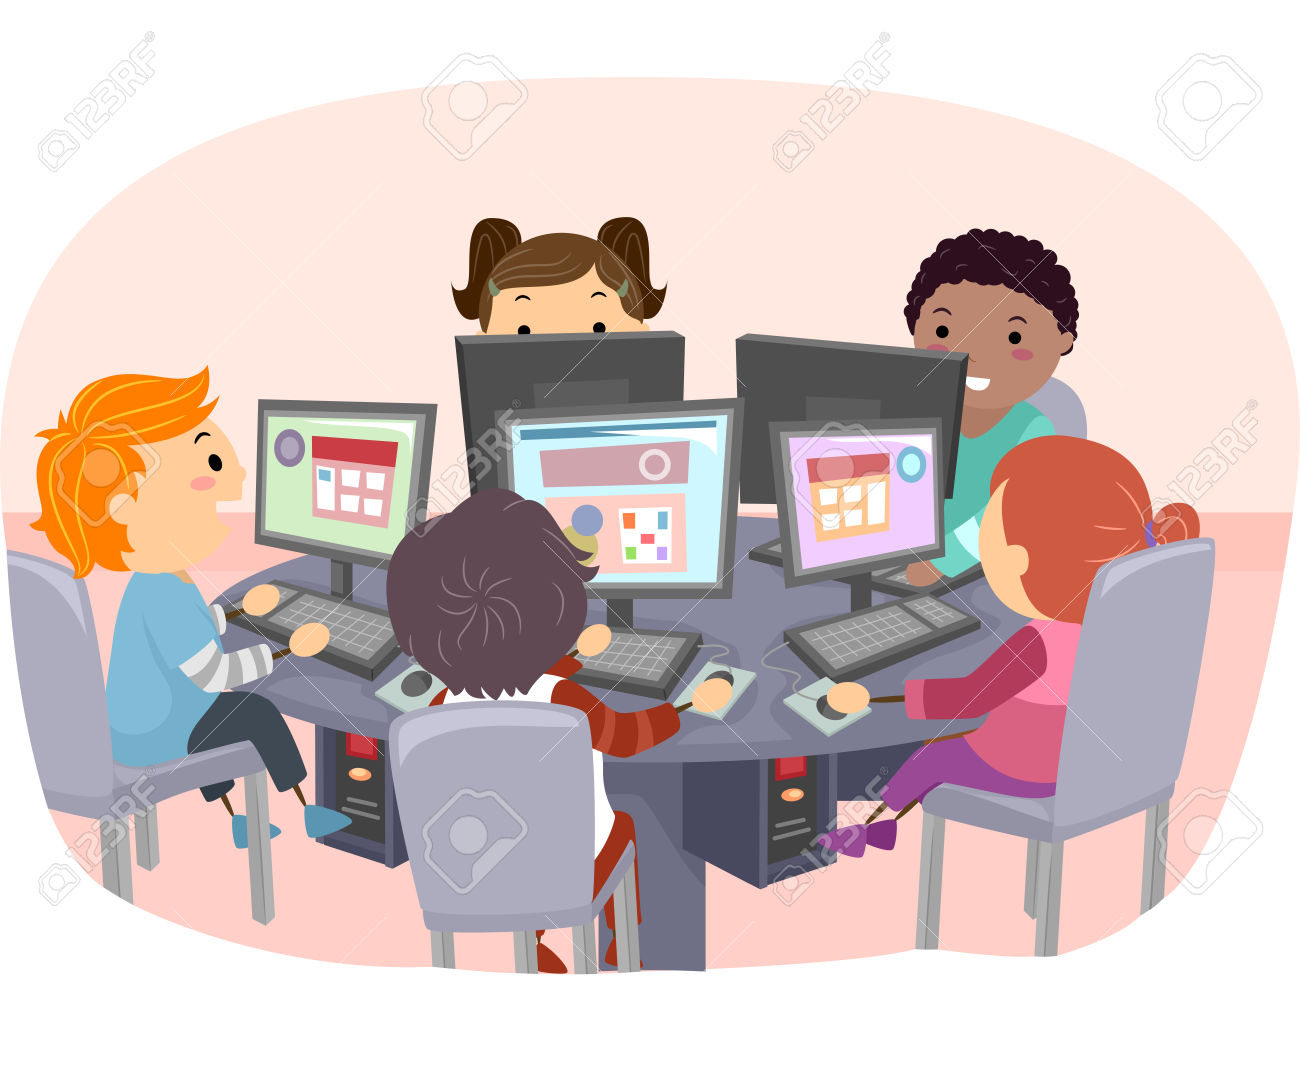 Computer in school clipart svg library library Use of computer in school clipart - ClipartFox svg library library